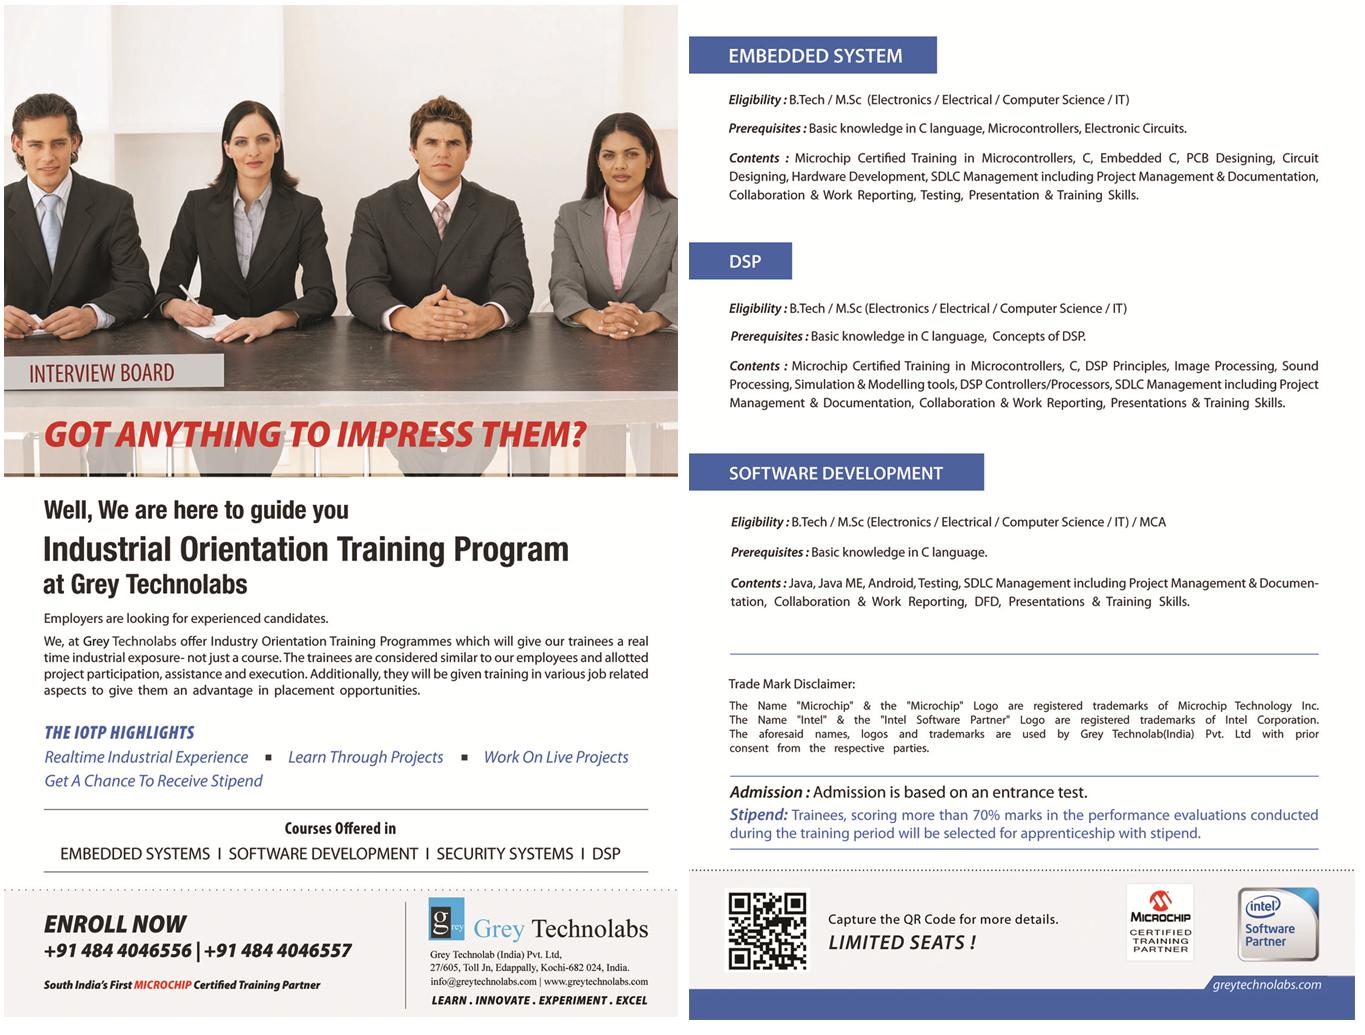 Industry Orientation Training Programme | Grey Technolabs